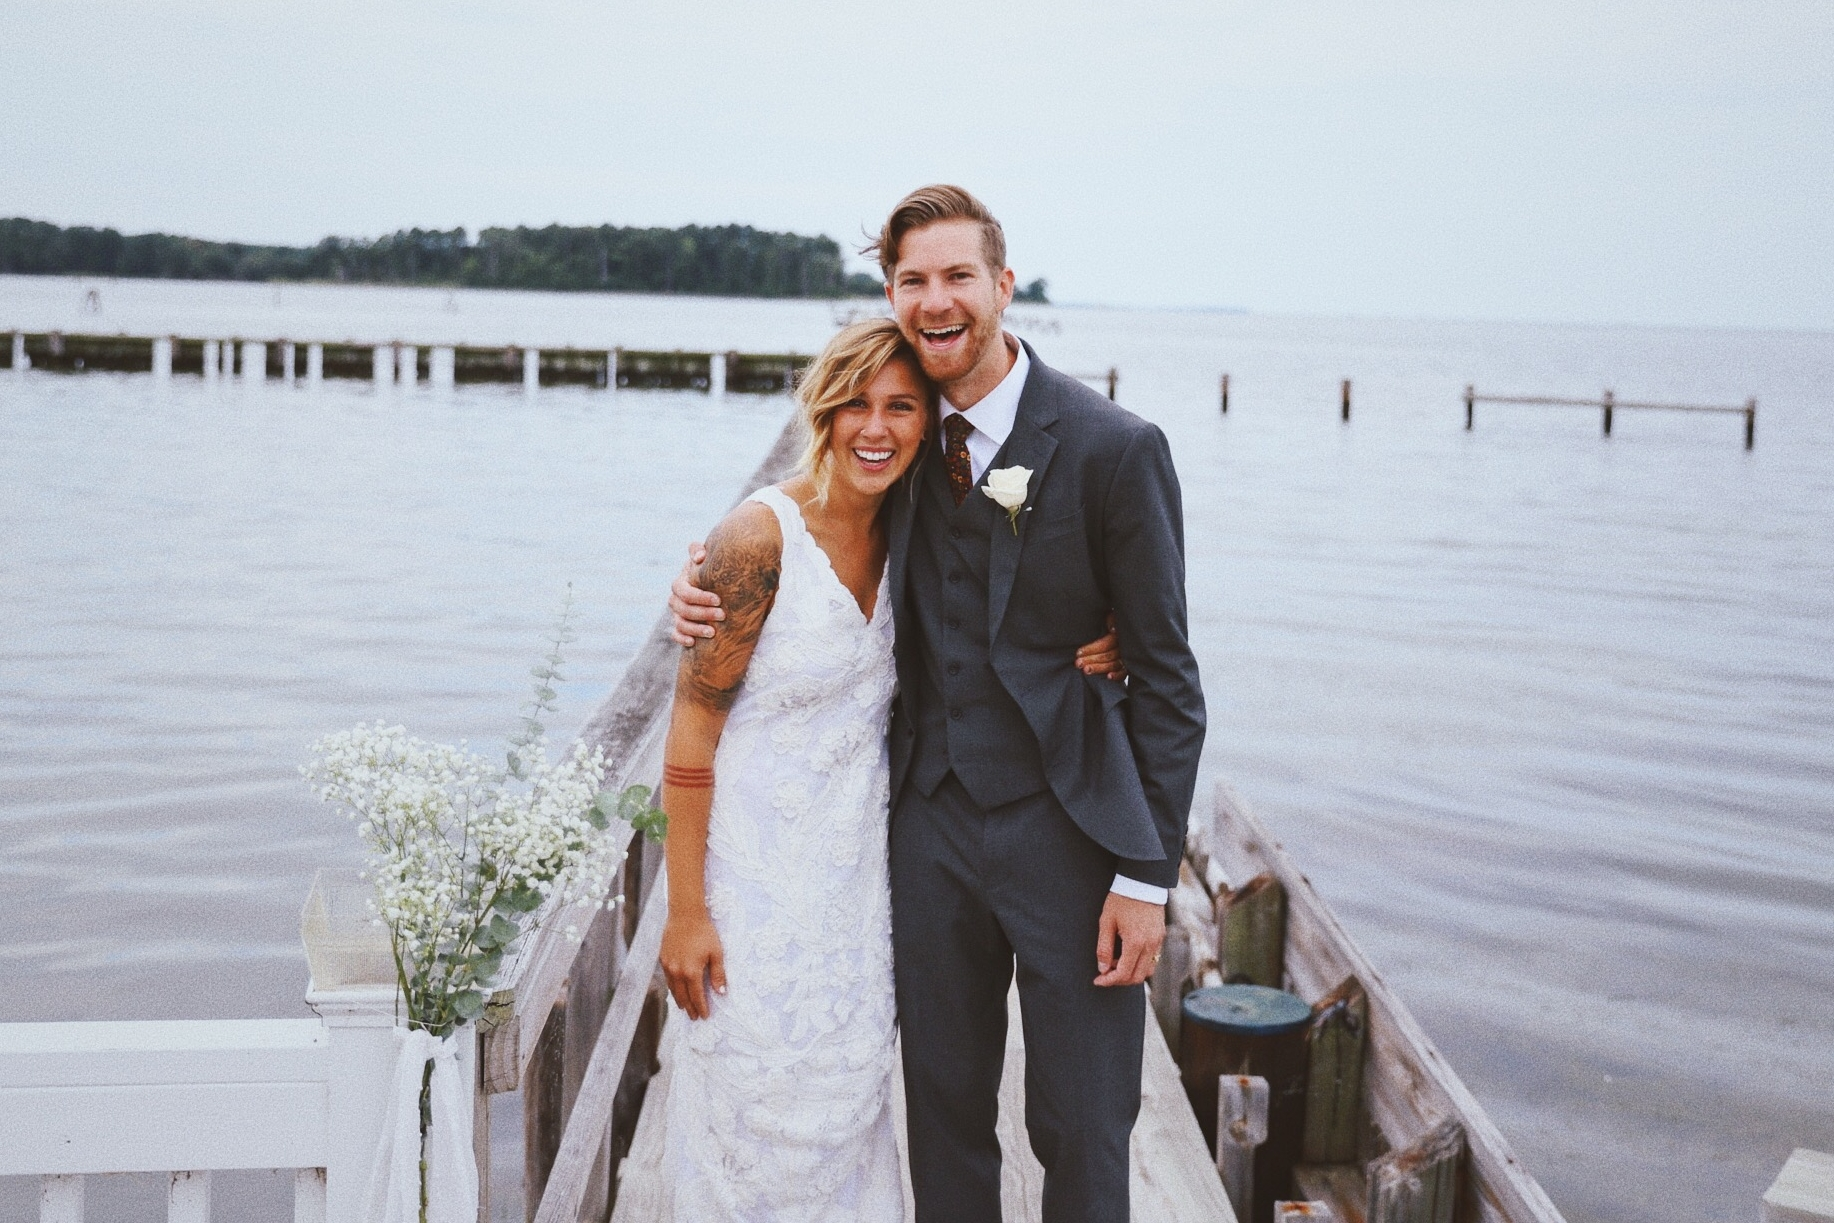 [Oh and also this week...Andrew and Lauren got married...